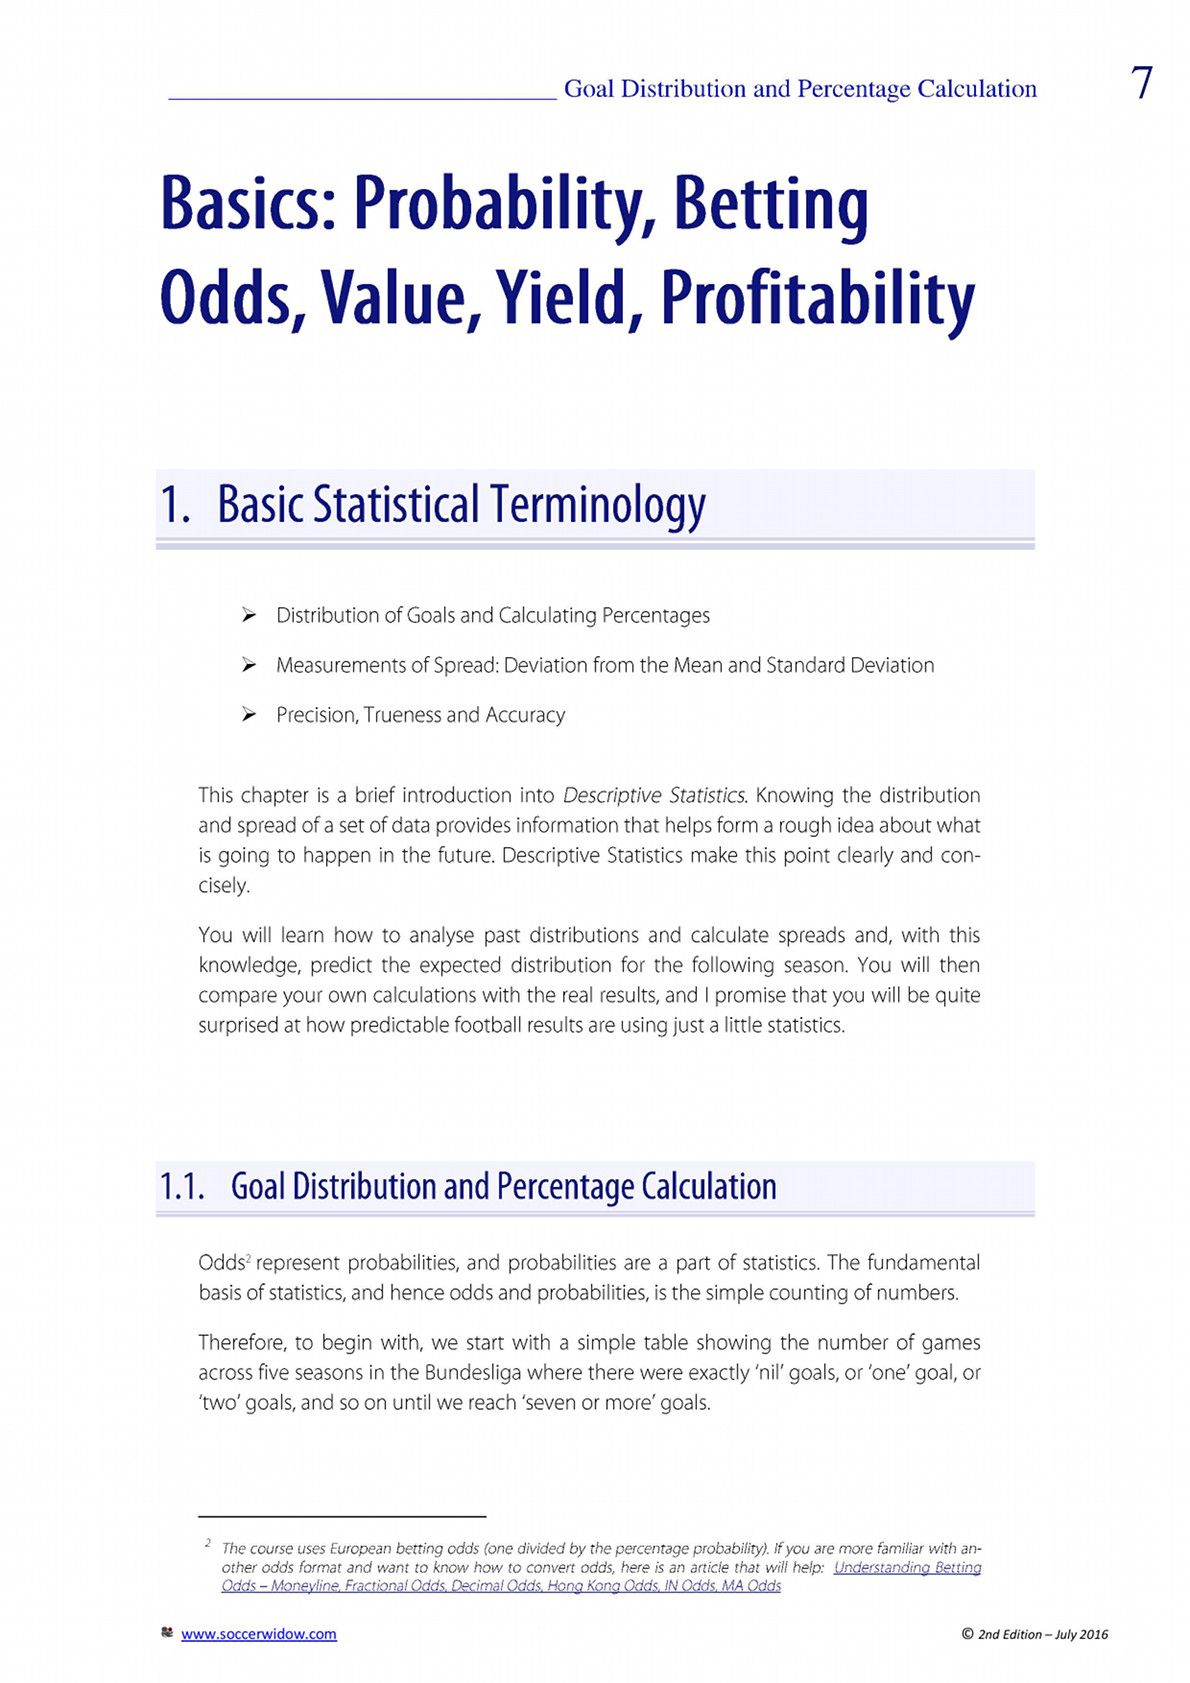 worksheet Probability And Odds Worksheet over under goals betting fundamentals of sports course basic statistical terminology